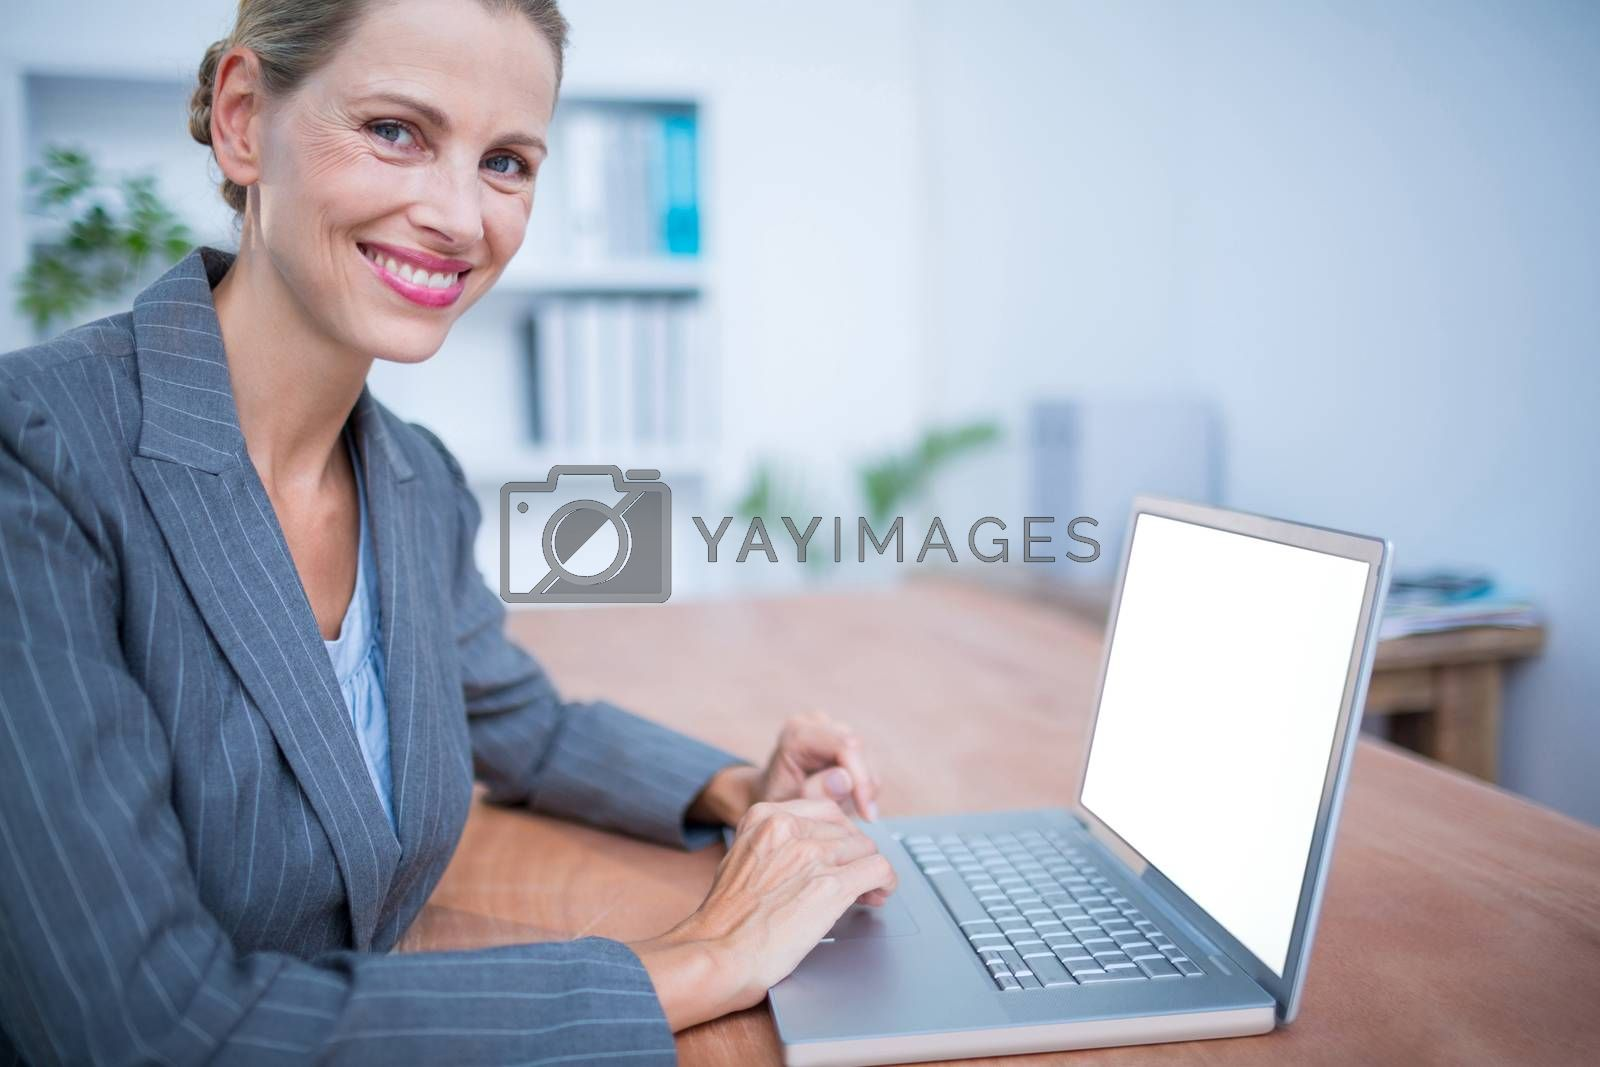 Royalty free image of Smiling blonde businesswoman working on laptop by Wavebreakmedia